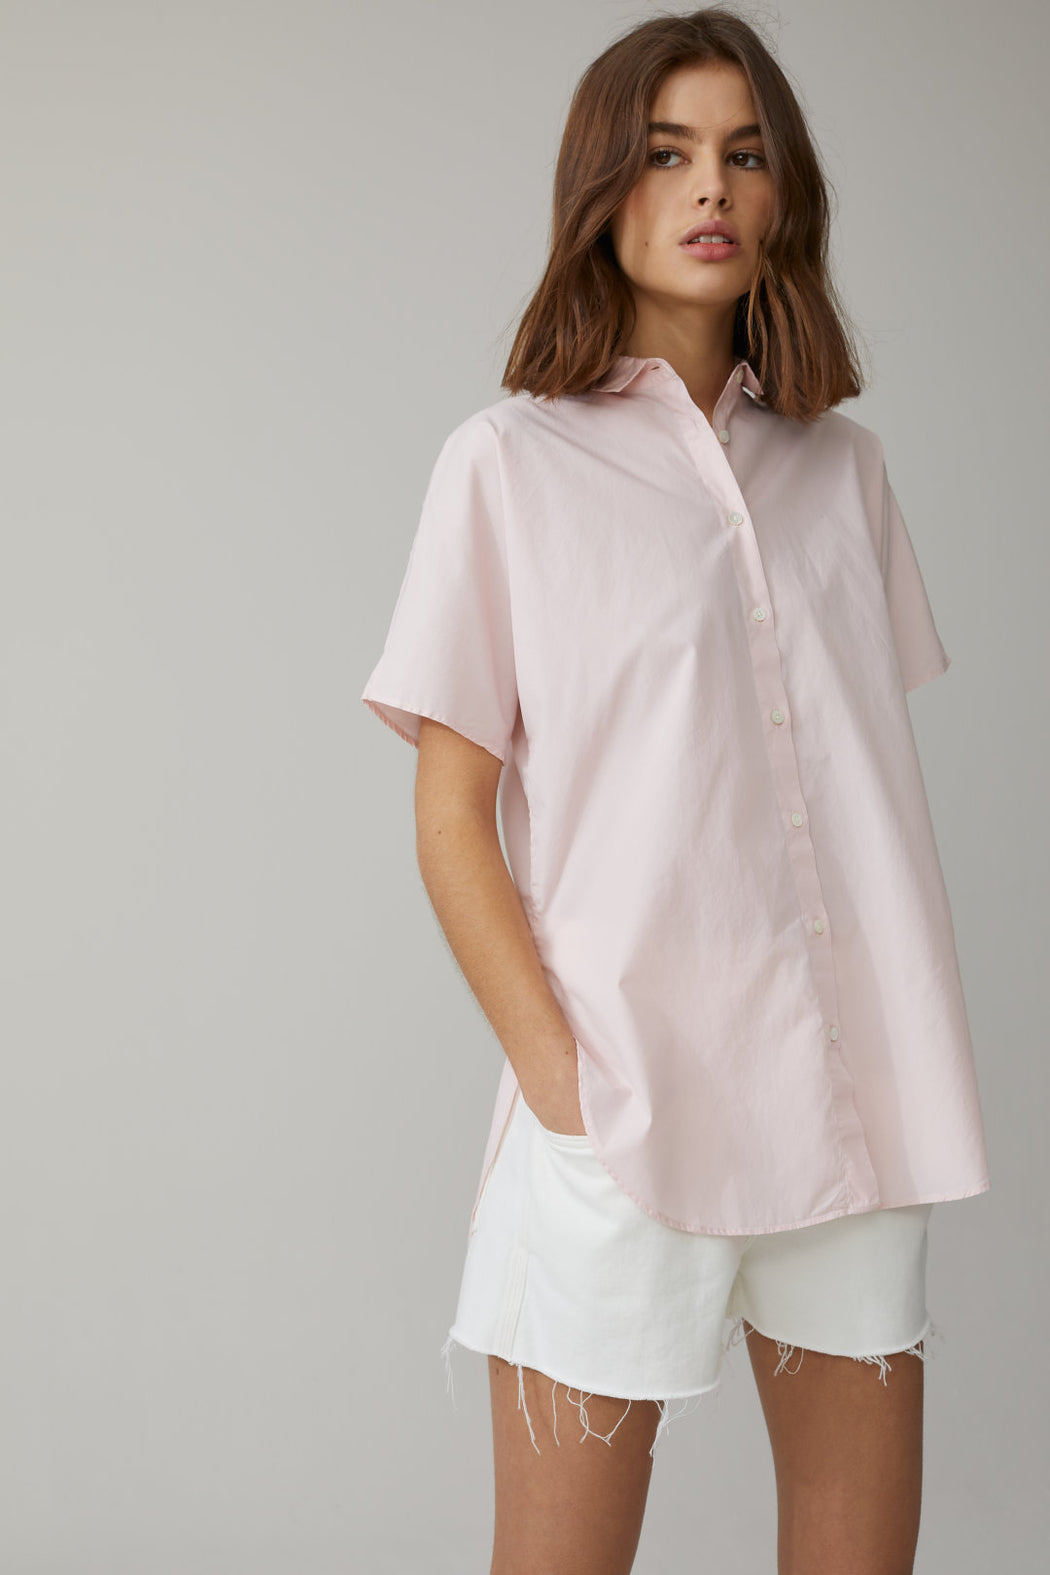 CLOSED POPLIN BLOUSE IN SOFT PINK